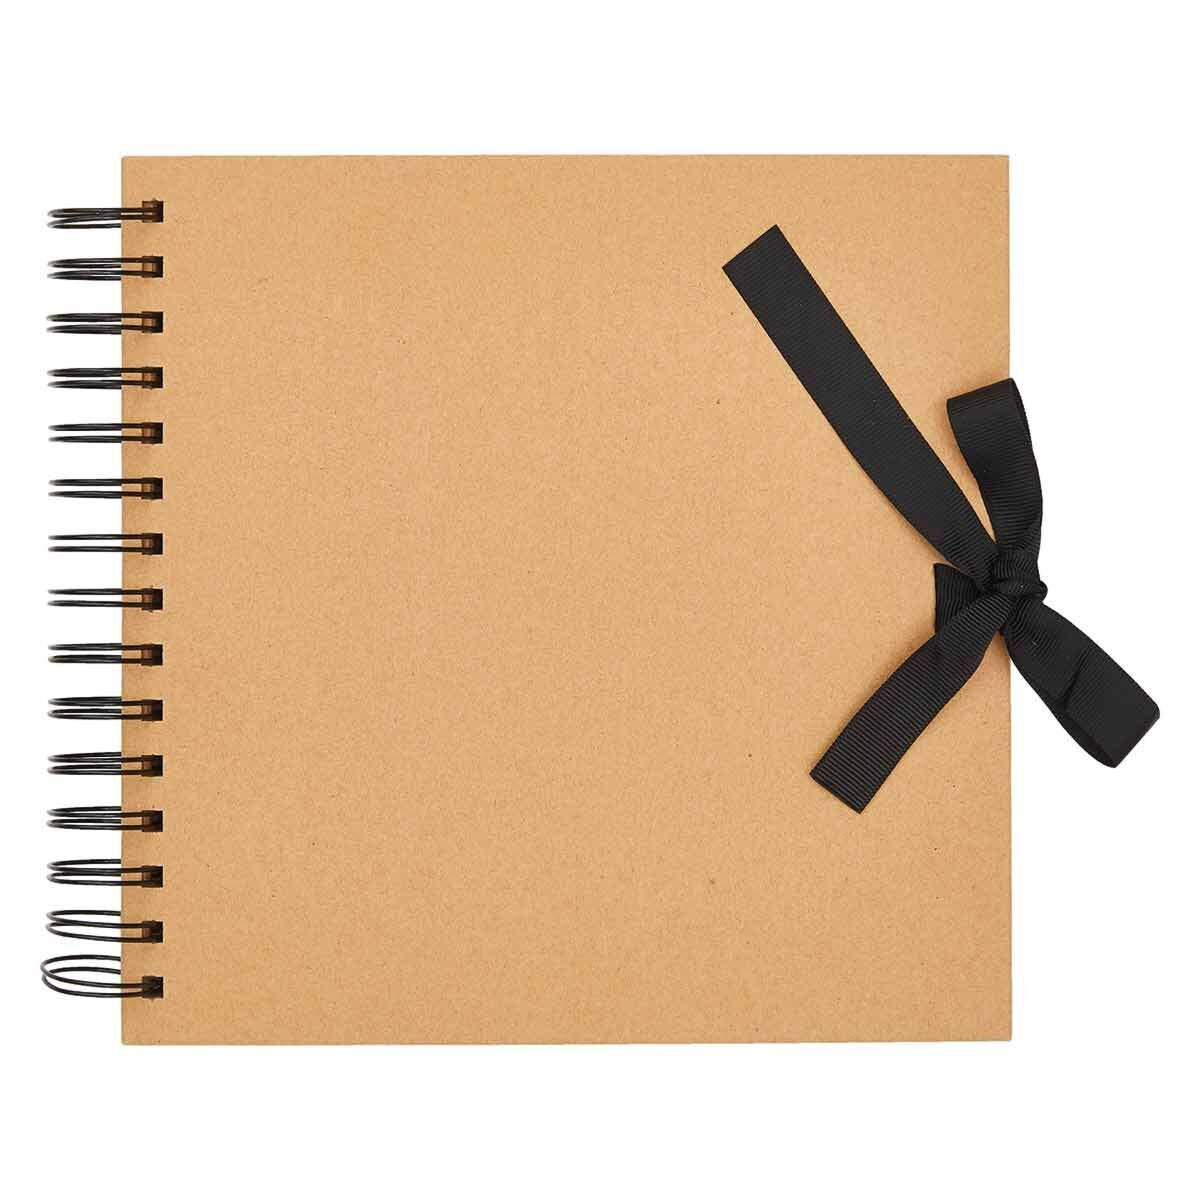 All Purpose Scrapbook with Ribbon Tie 8x8 Inch